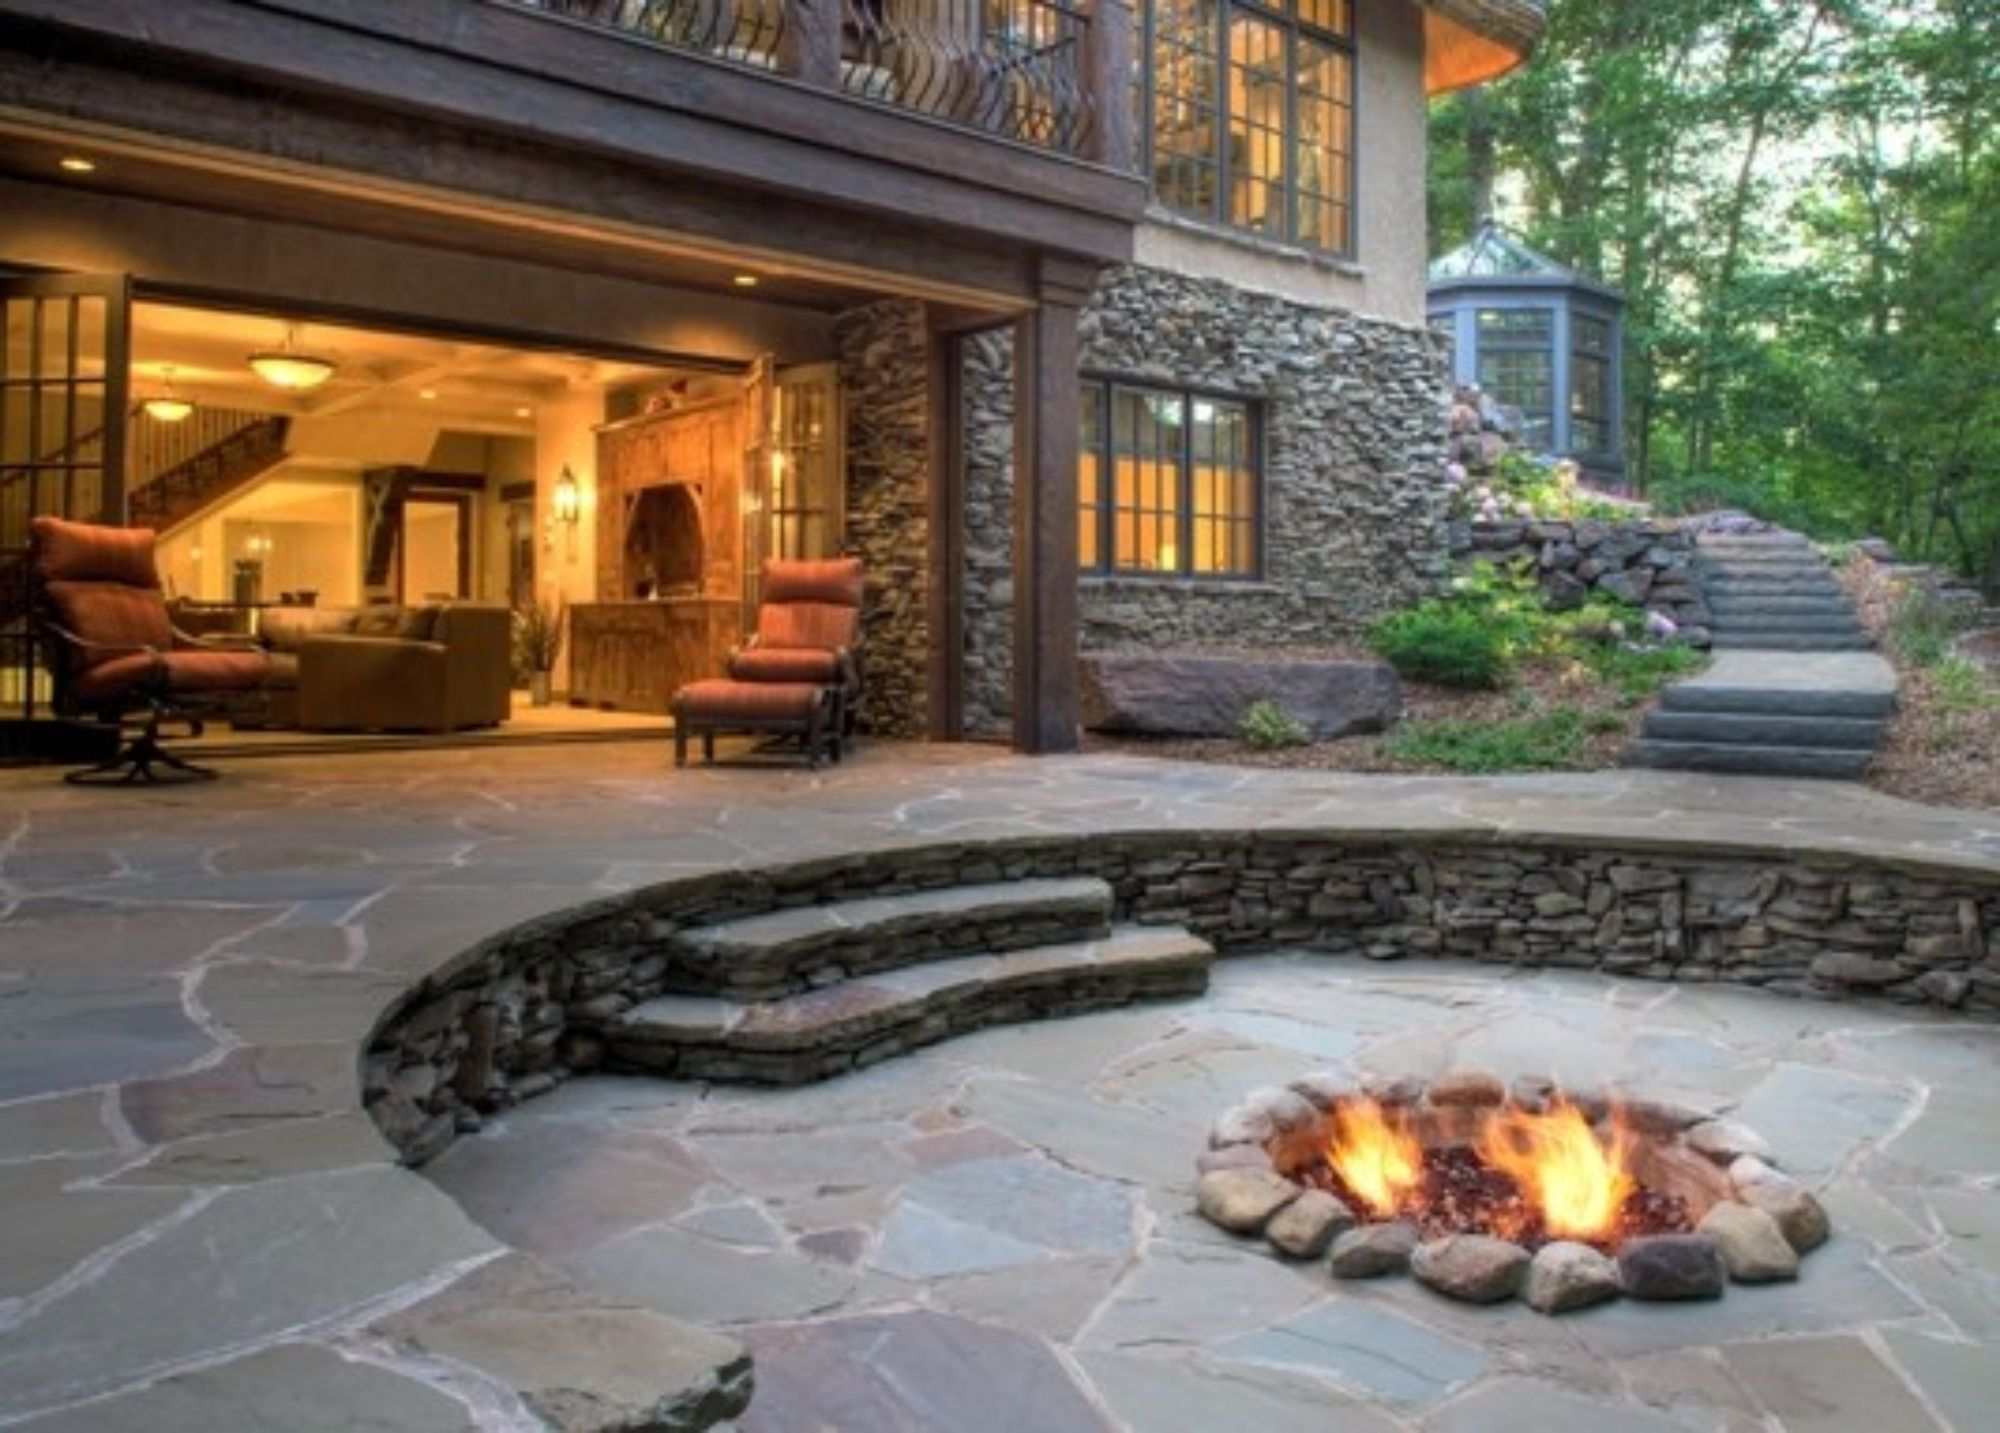 Patio Ideas with Fire Pit | Fire Pits | Pinterest | Outdoor stone ...